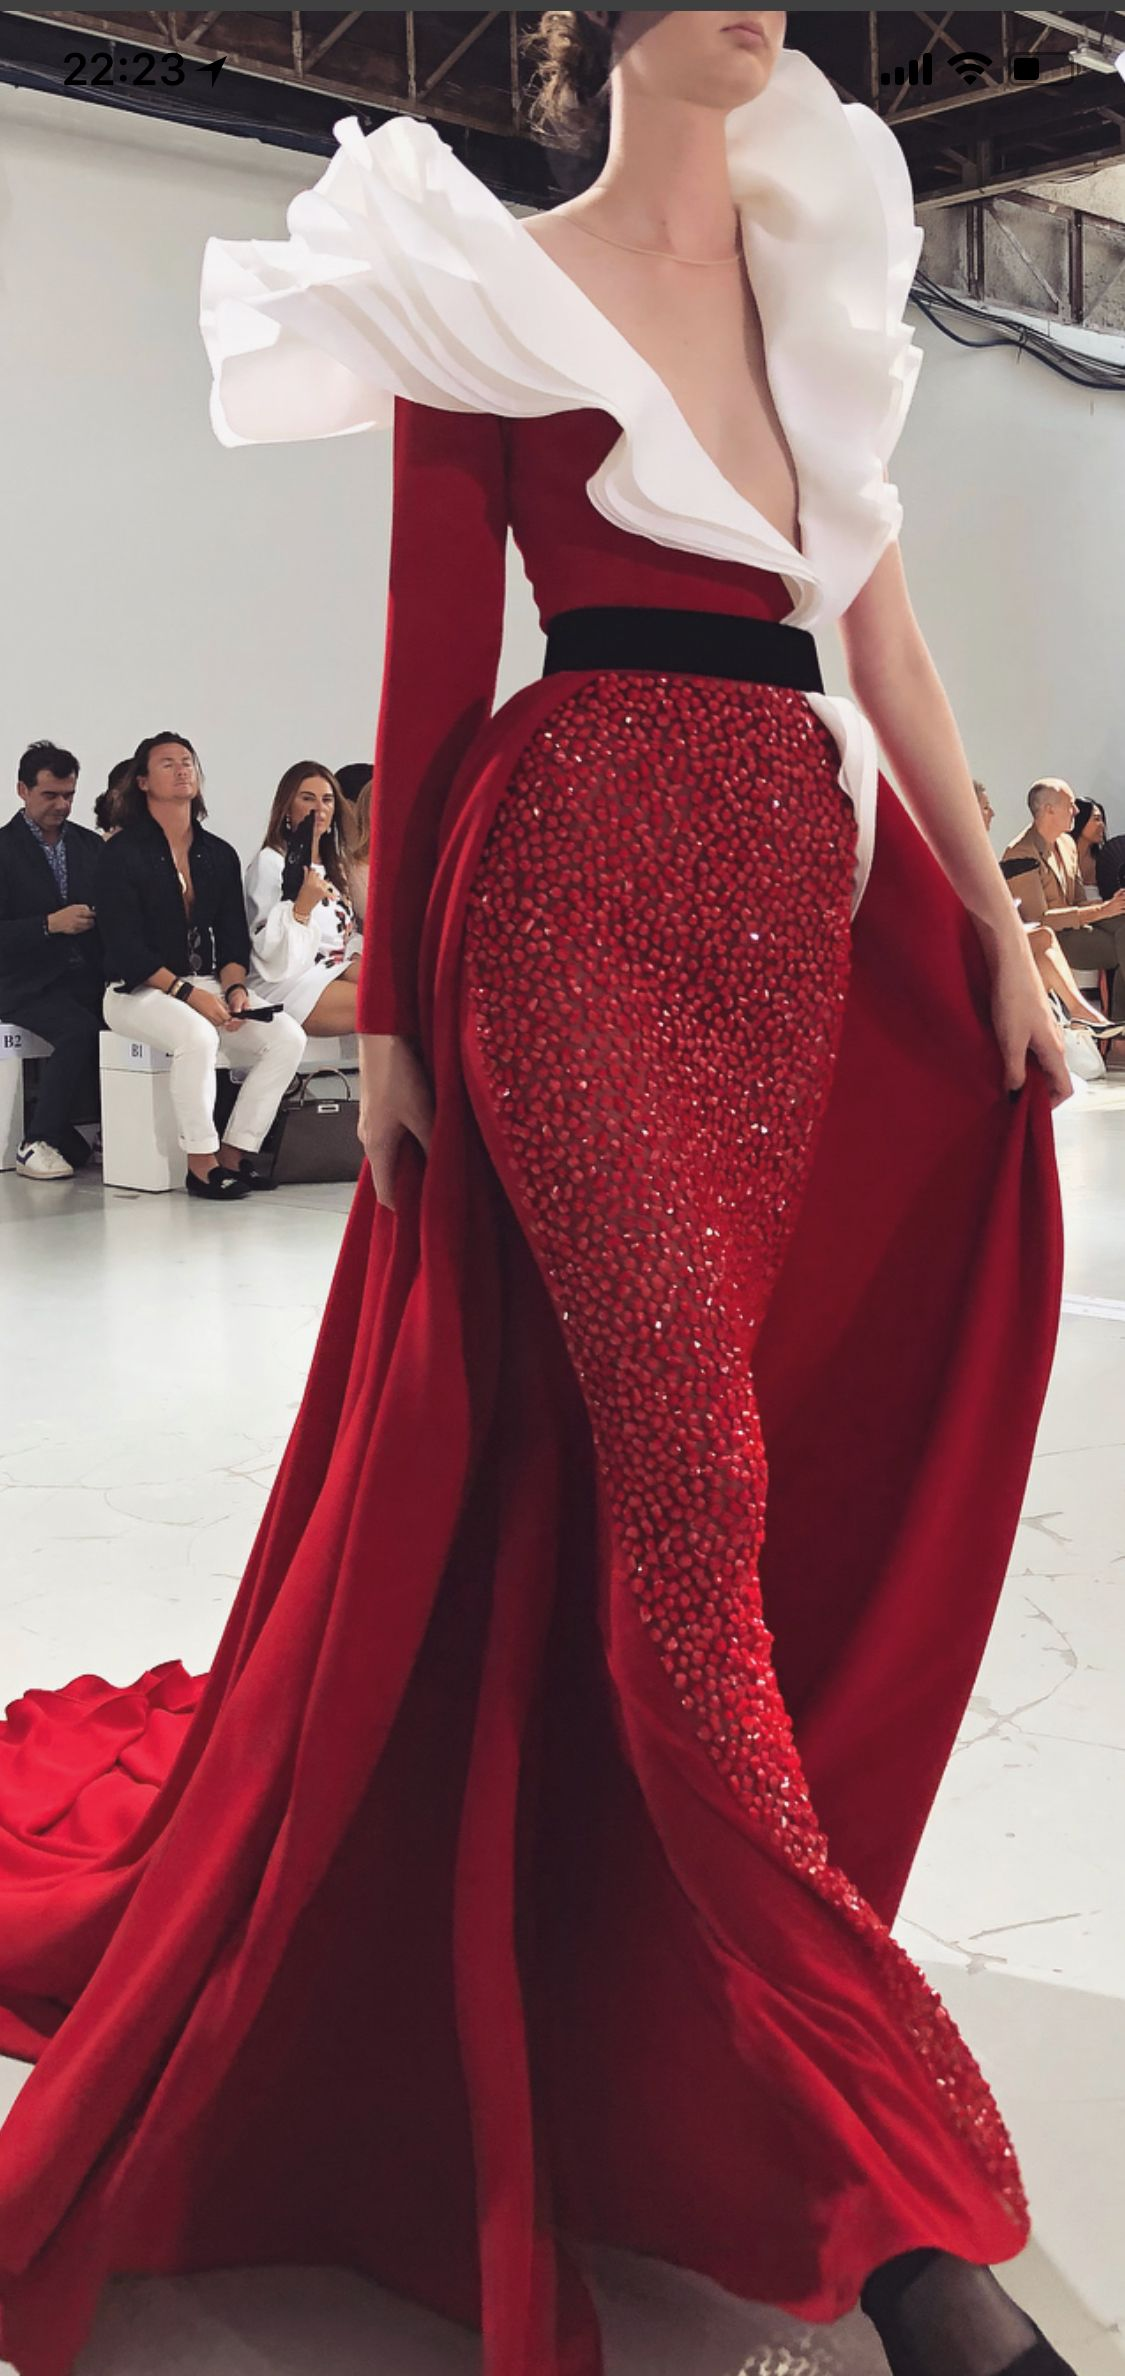 Pin by alyona verbetskaya on Мода pinterest red gowns prom